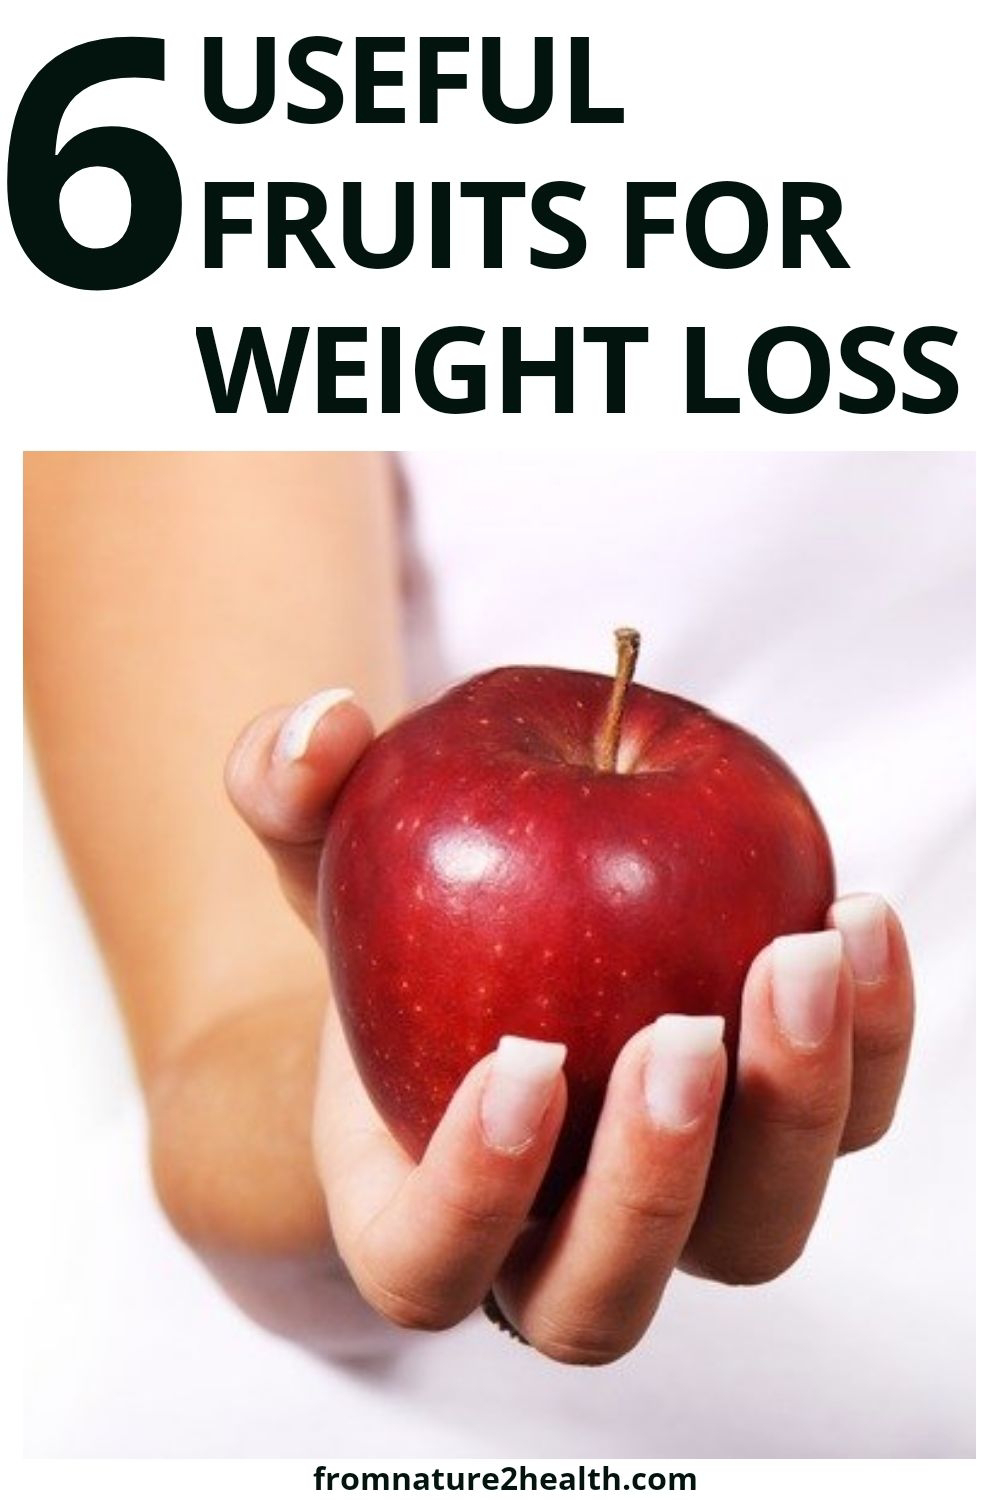 6 Useful Fruits for Weight Loss